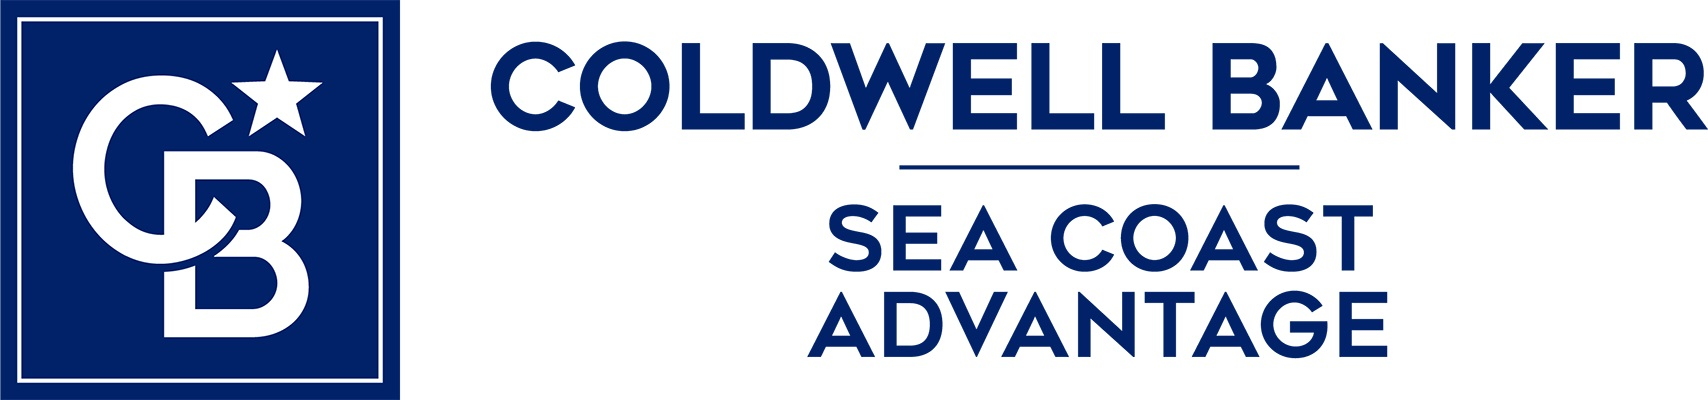 Julie Chappell - Coldwell Banker Sea Coast Advantage Realty Logo